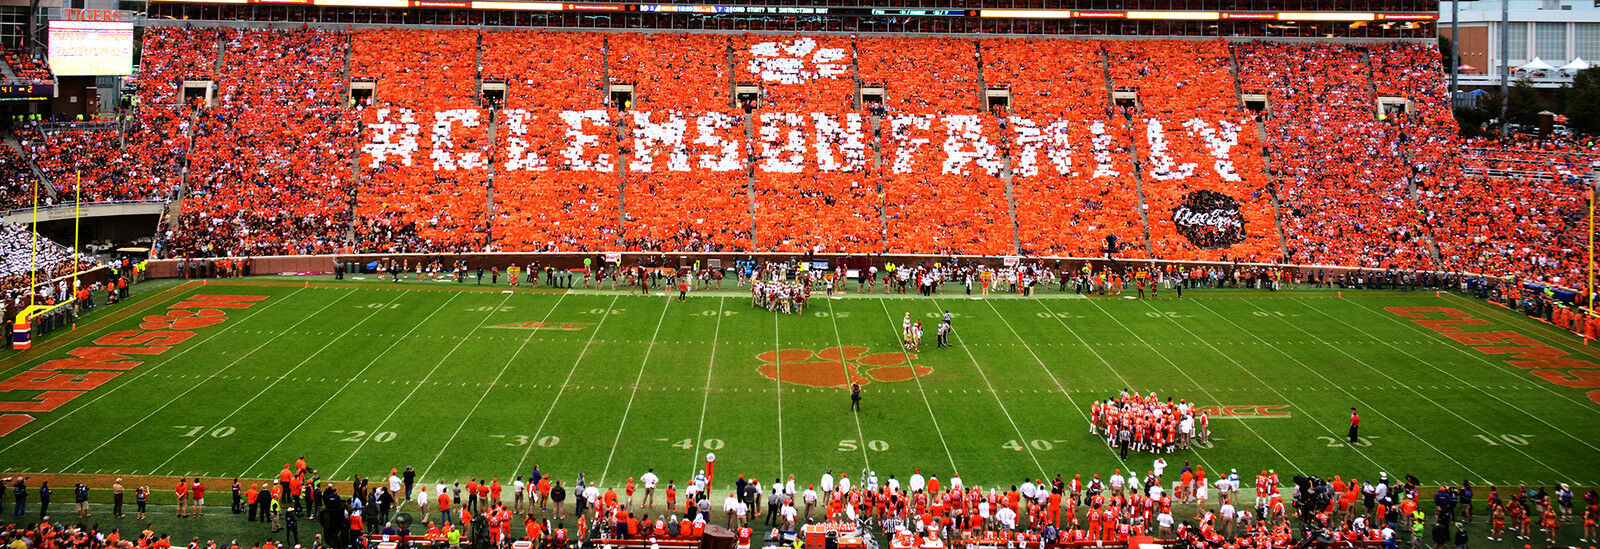 Auburn Tigers at Clemson Tigers Football